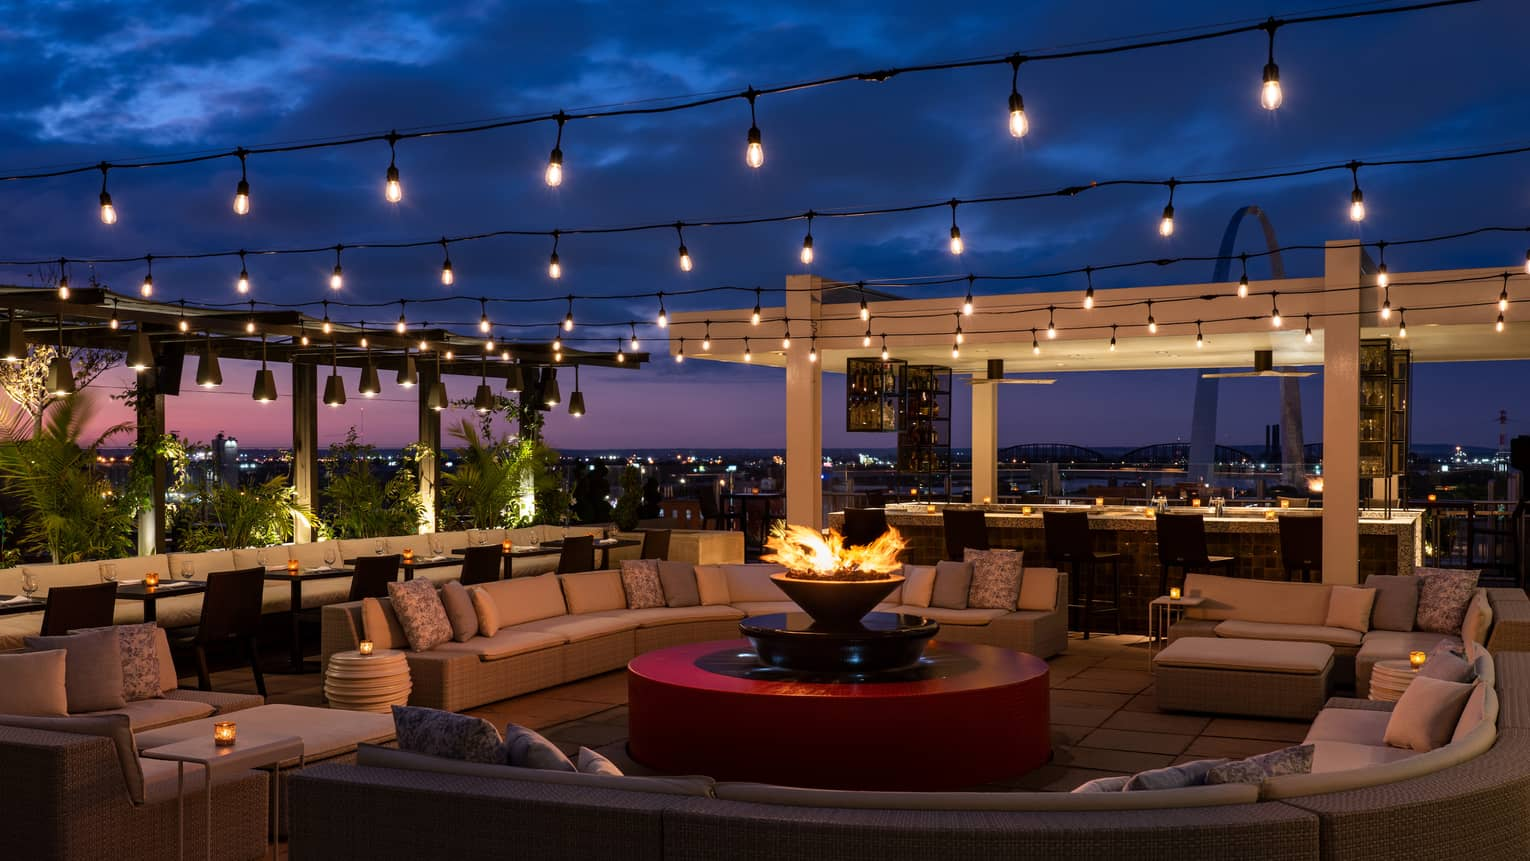 The sky is dark beyond the Cinderhouse Rooftop Bar - decorated with a fire pit, curved sectional, rows of hanging lights and shrubbery